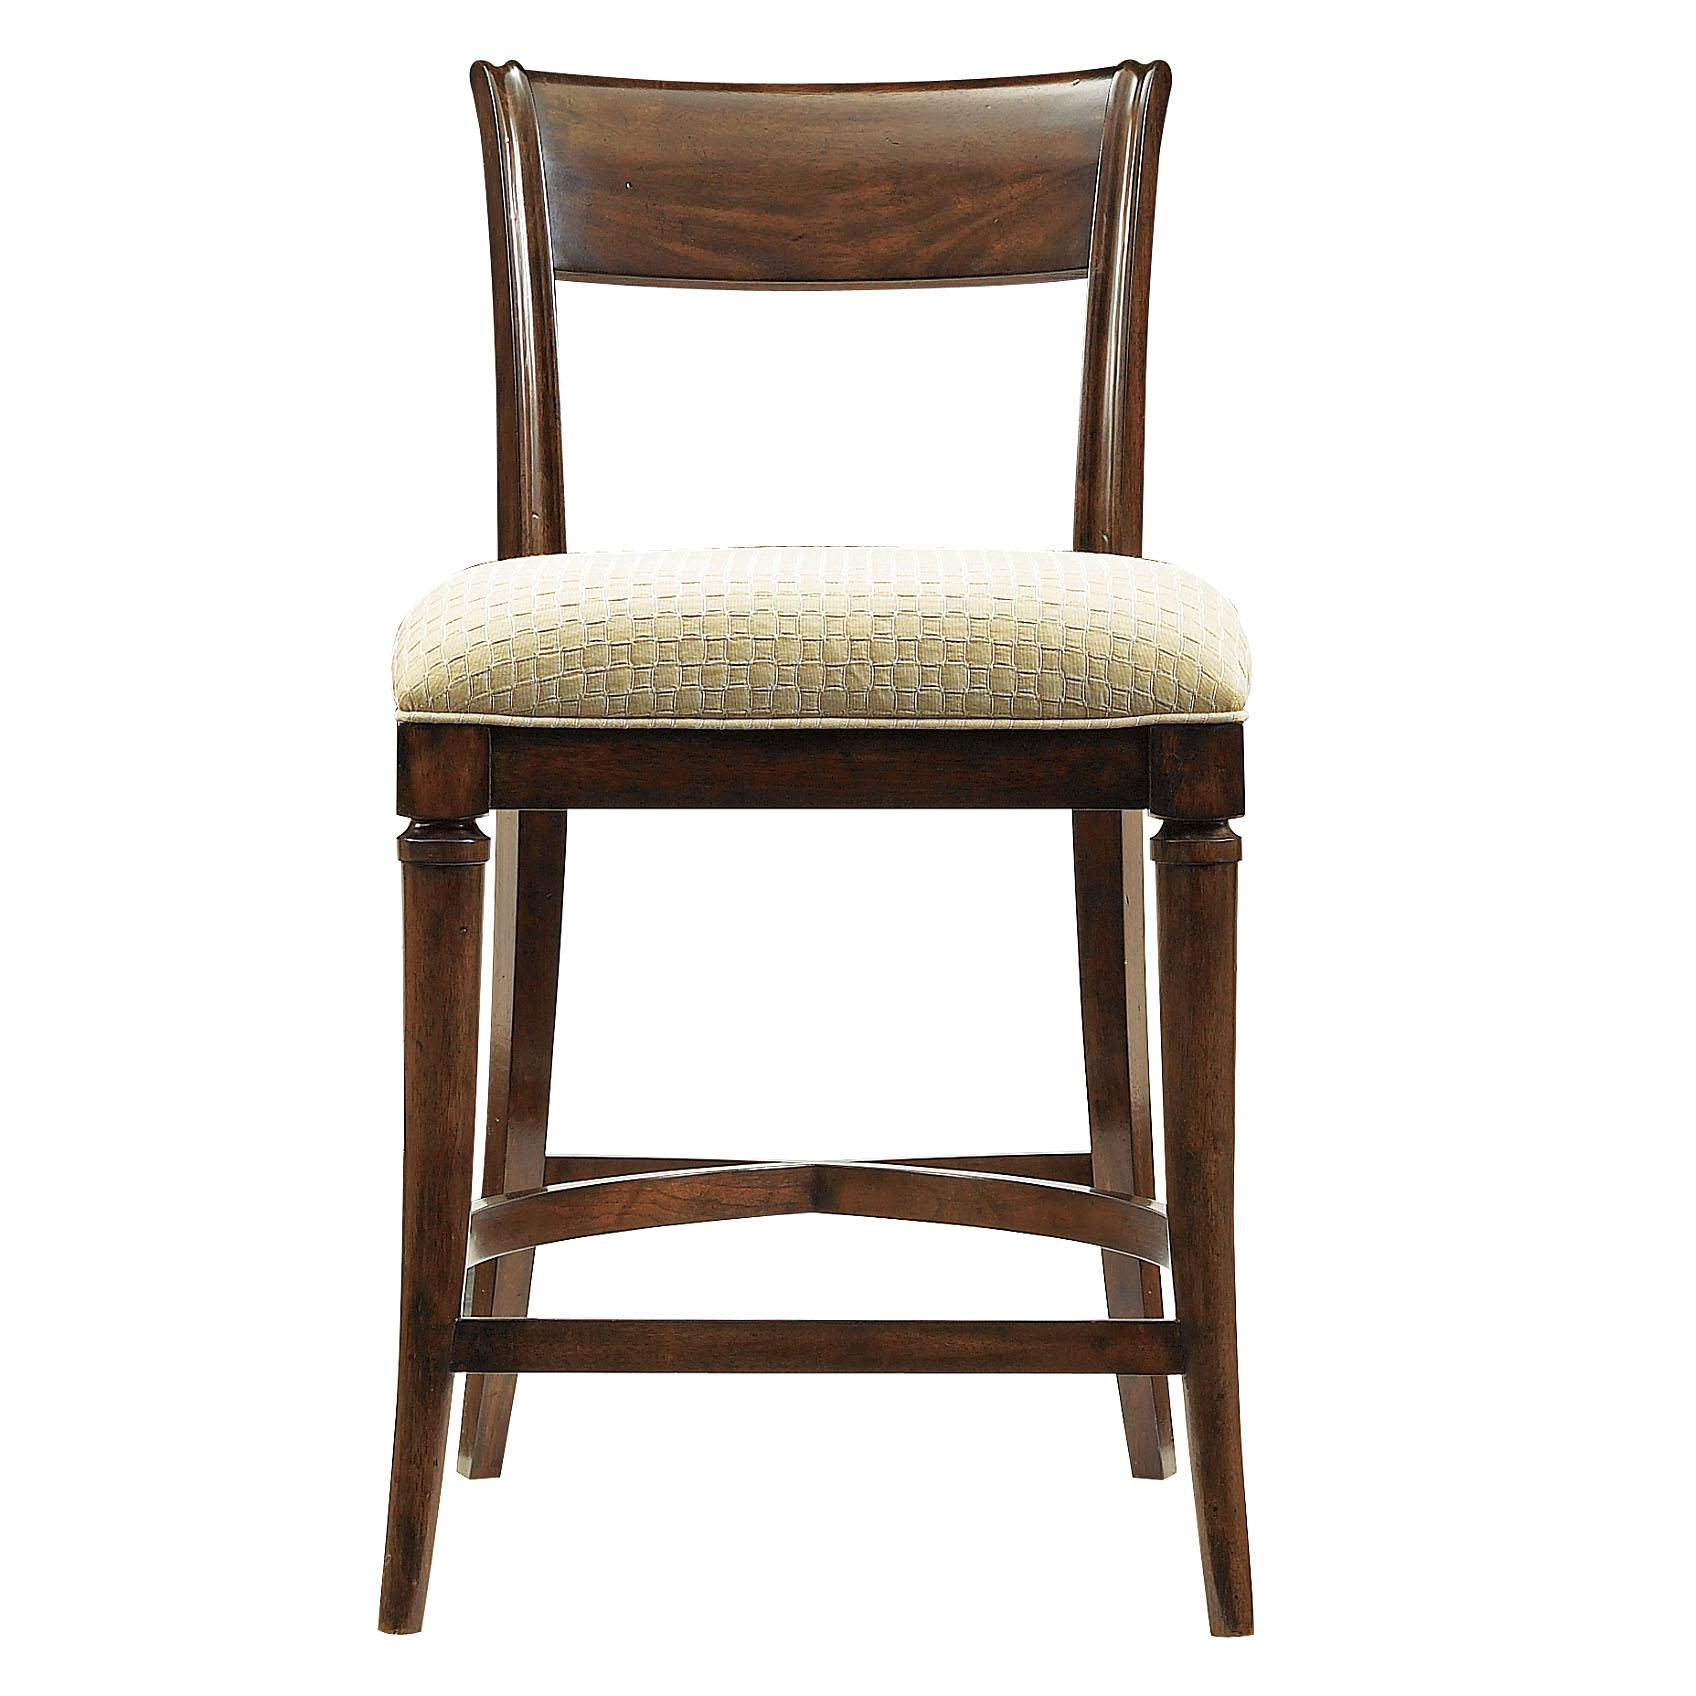 Stanley Furniture Avalon Heights Tempo Counter Stool - Item Number: 193-11-72